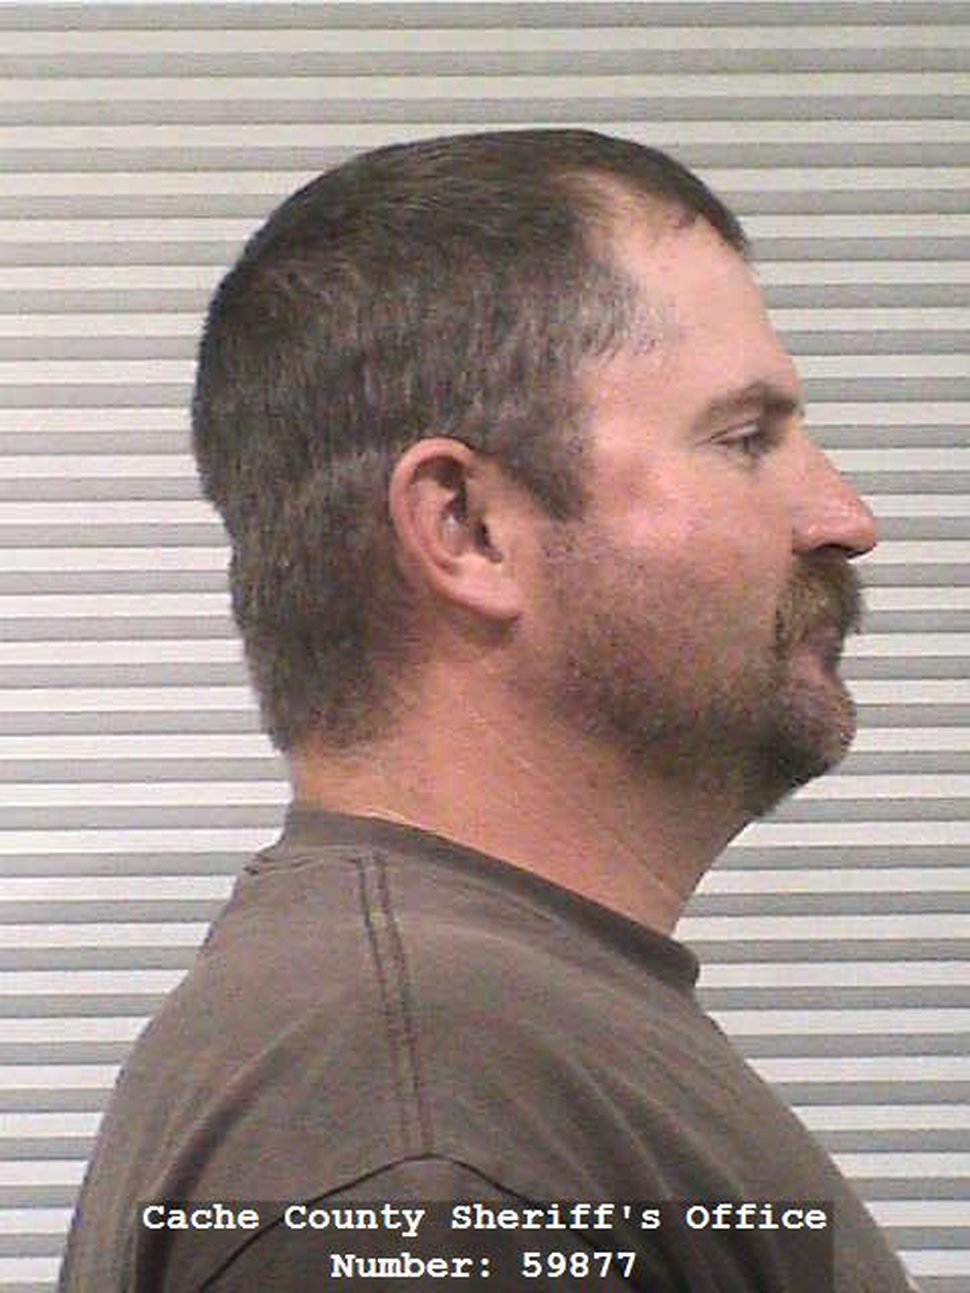 (Photo courtesy Cache County Jail) Jason Whittier on Oct. 2 pleaded no contest to class B misdemeanor aggravated cruelty to an animal after he left his police dog, Endy, in a hot patrol truck in July.